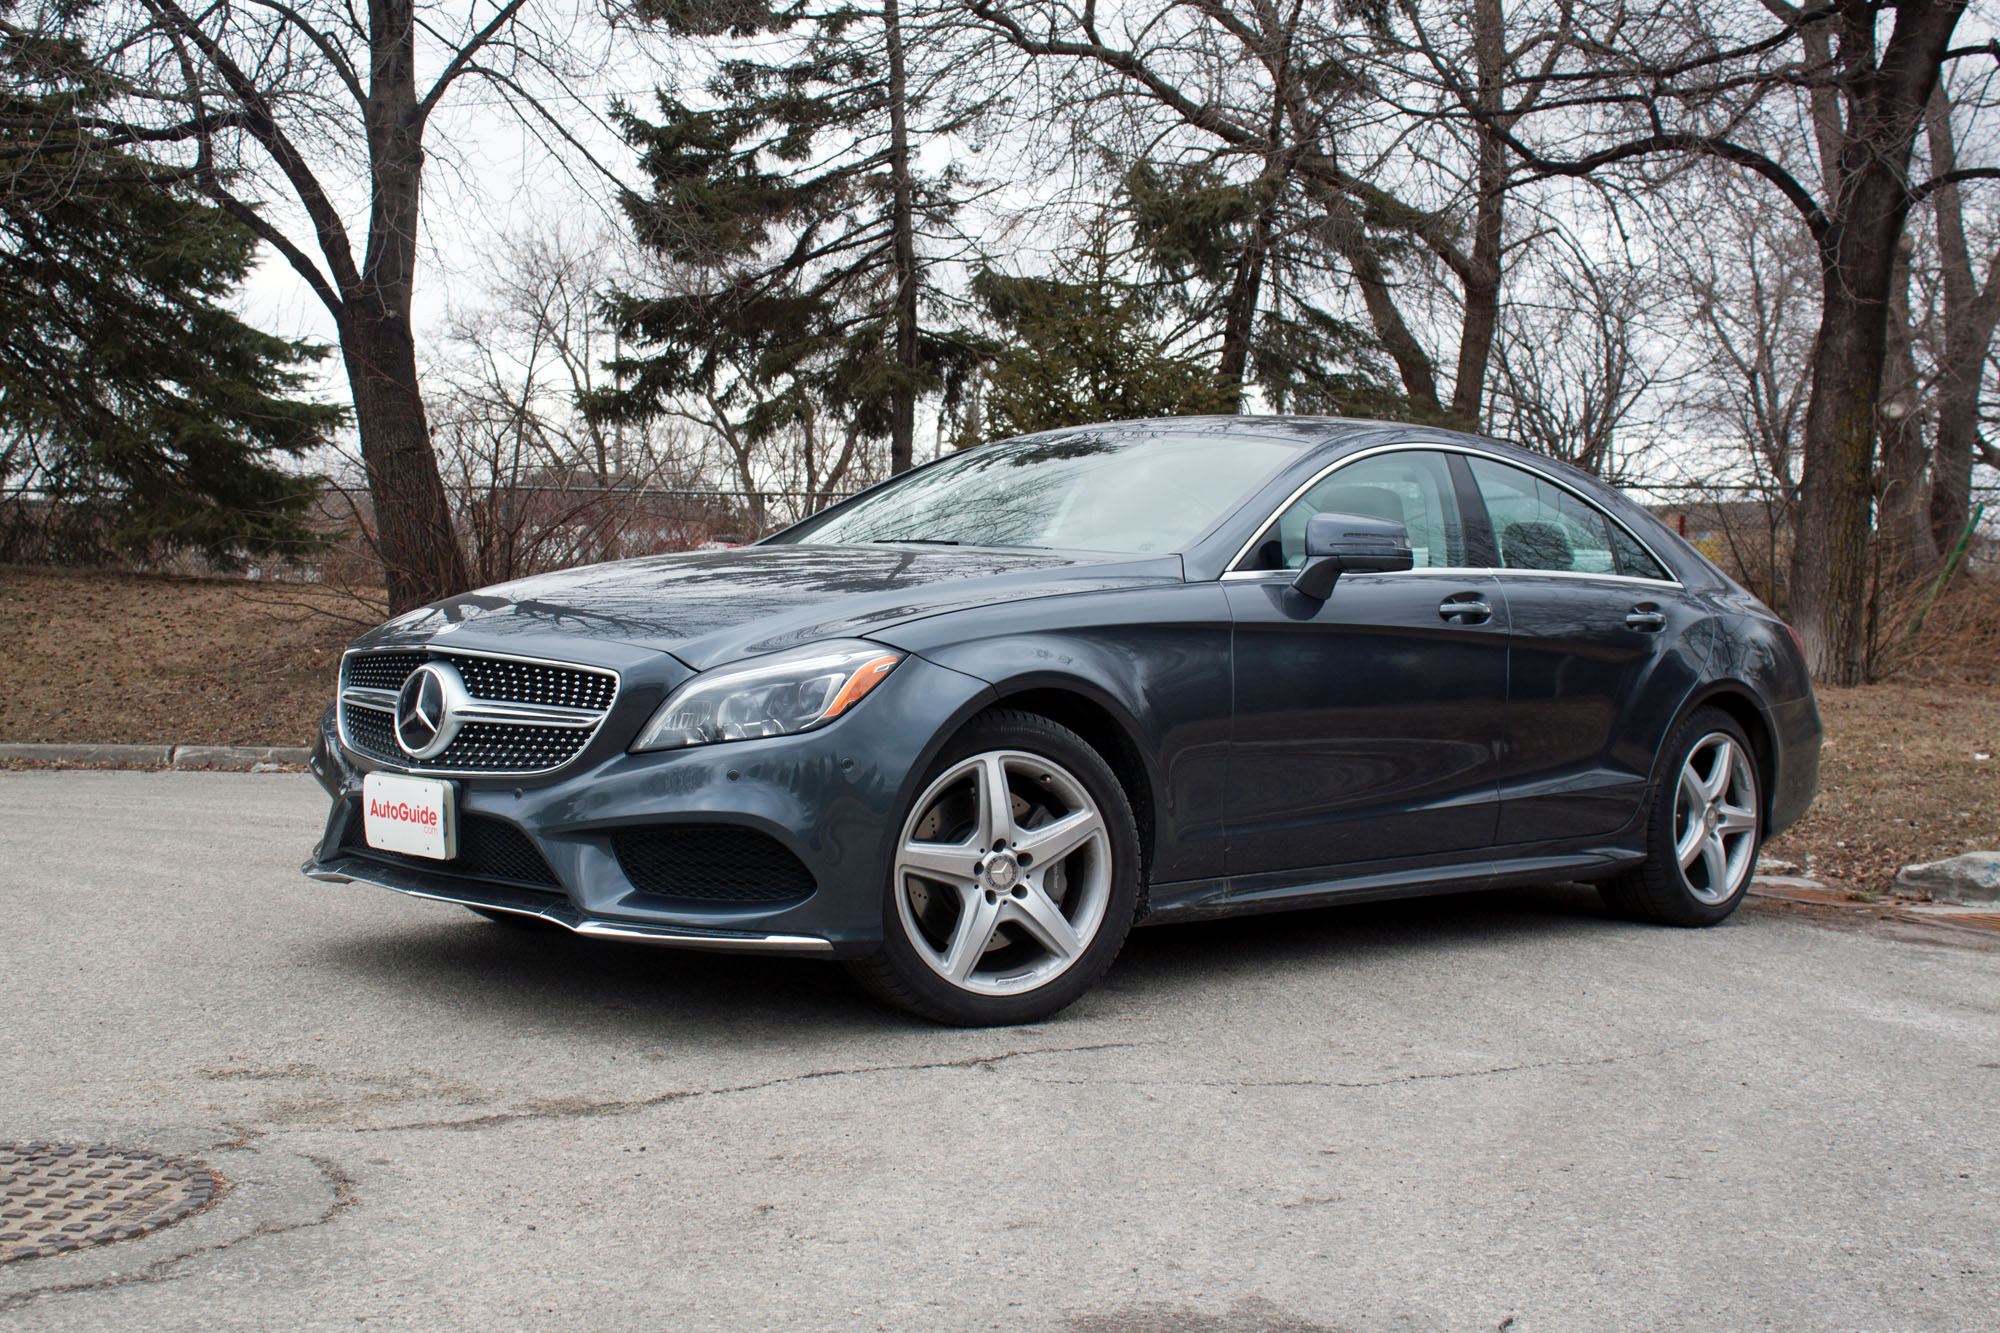 2015 mercedes benz cls400 4matic review news for Mercedes benz cls550 review